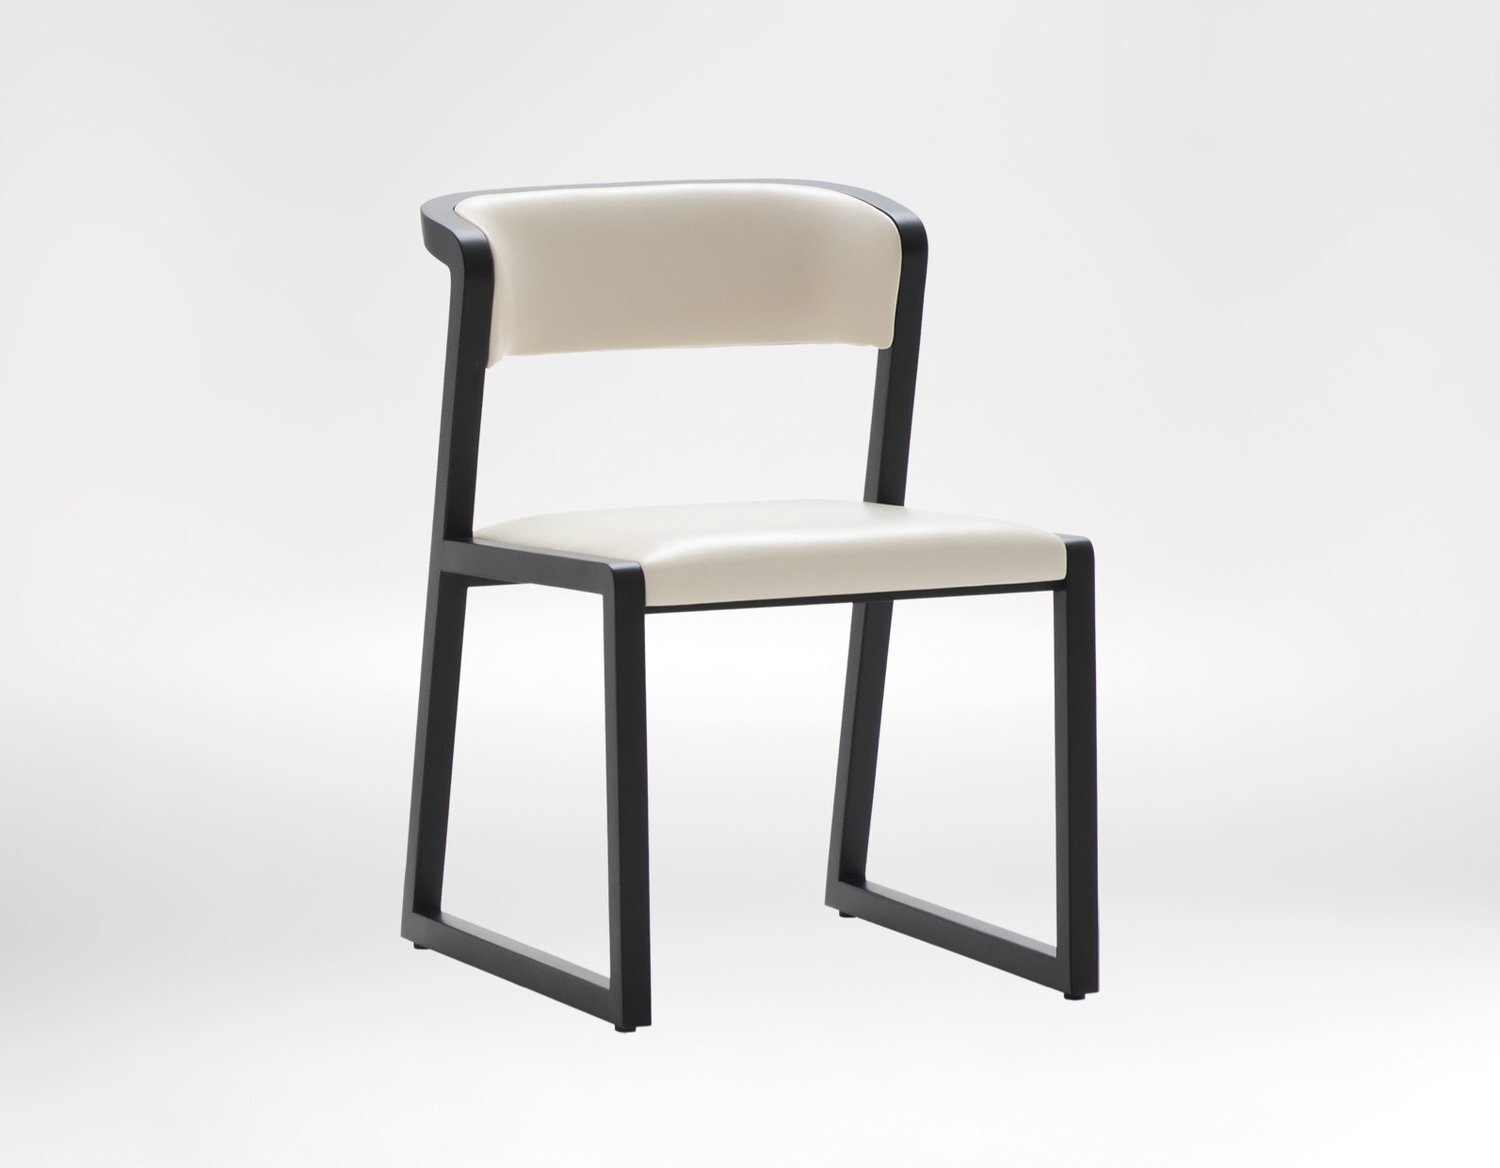 Ming chair - Designed around the contours of the body, it emanates perfectly formed sophistication.